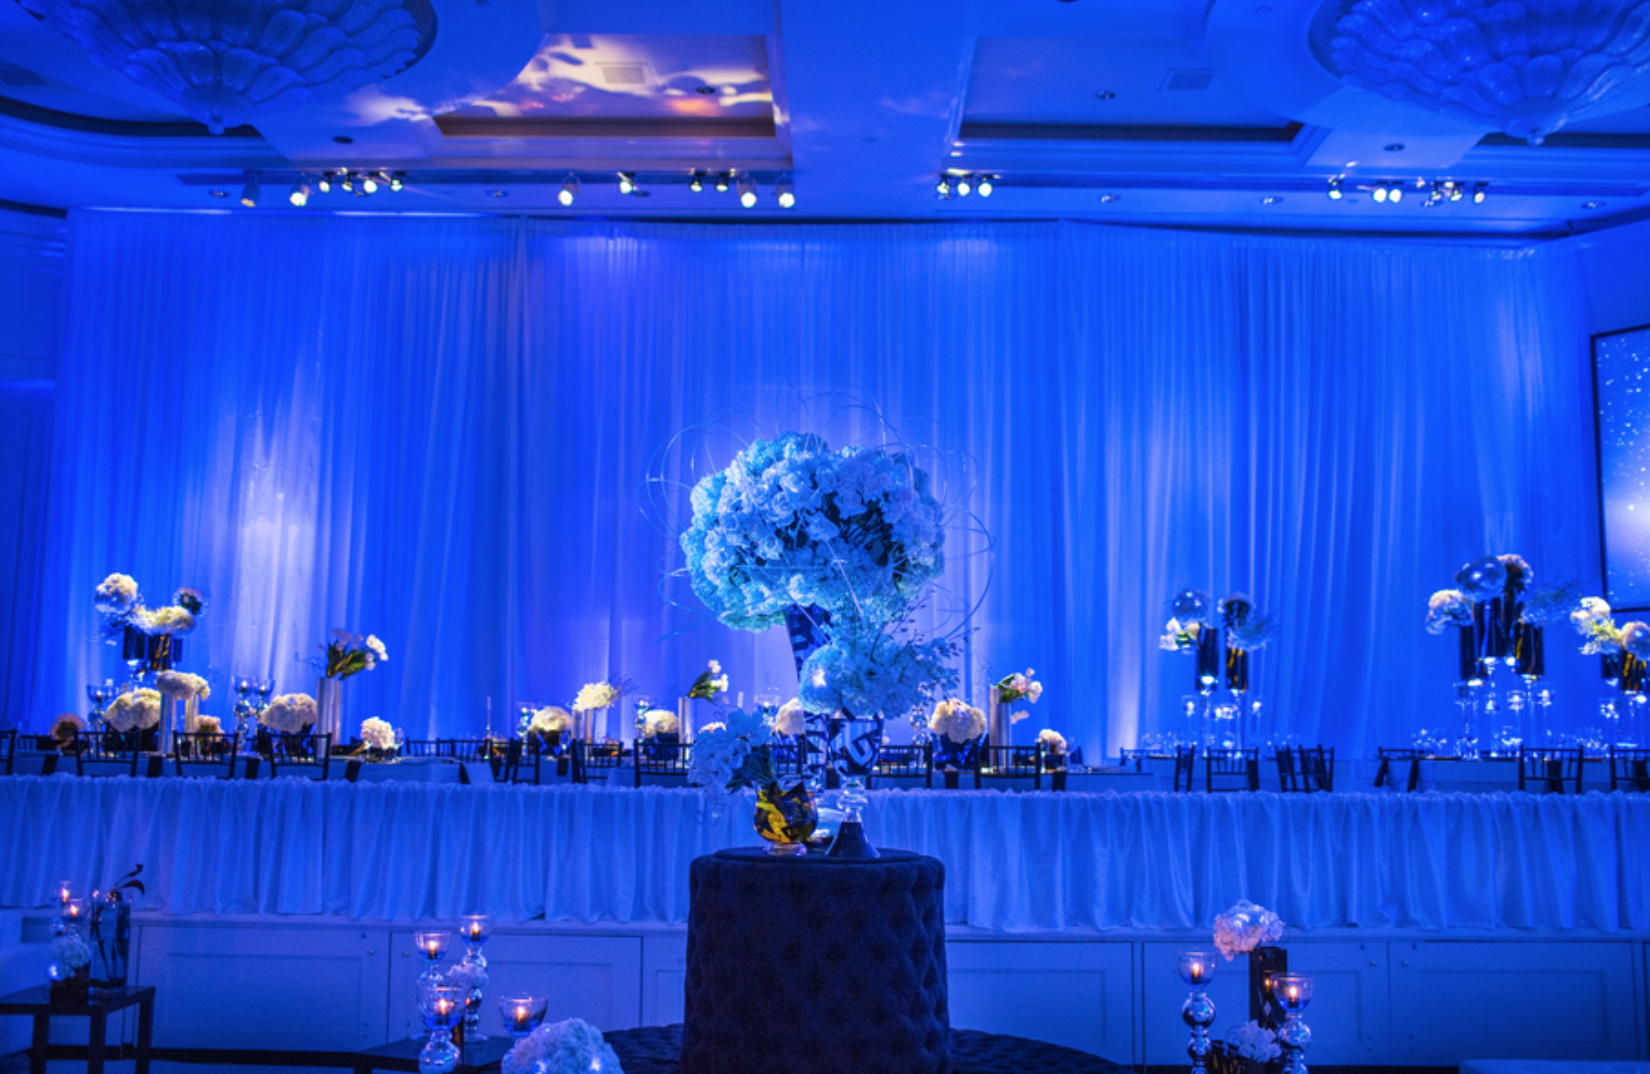 Blue Chic Bar Mitzvah - Square Root Designs